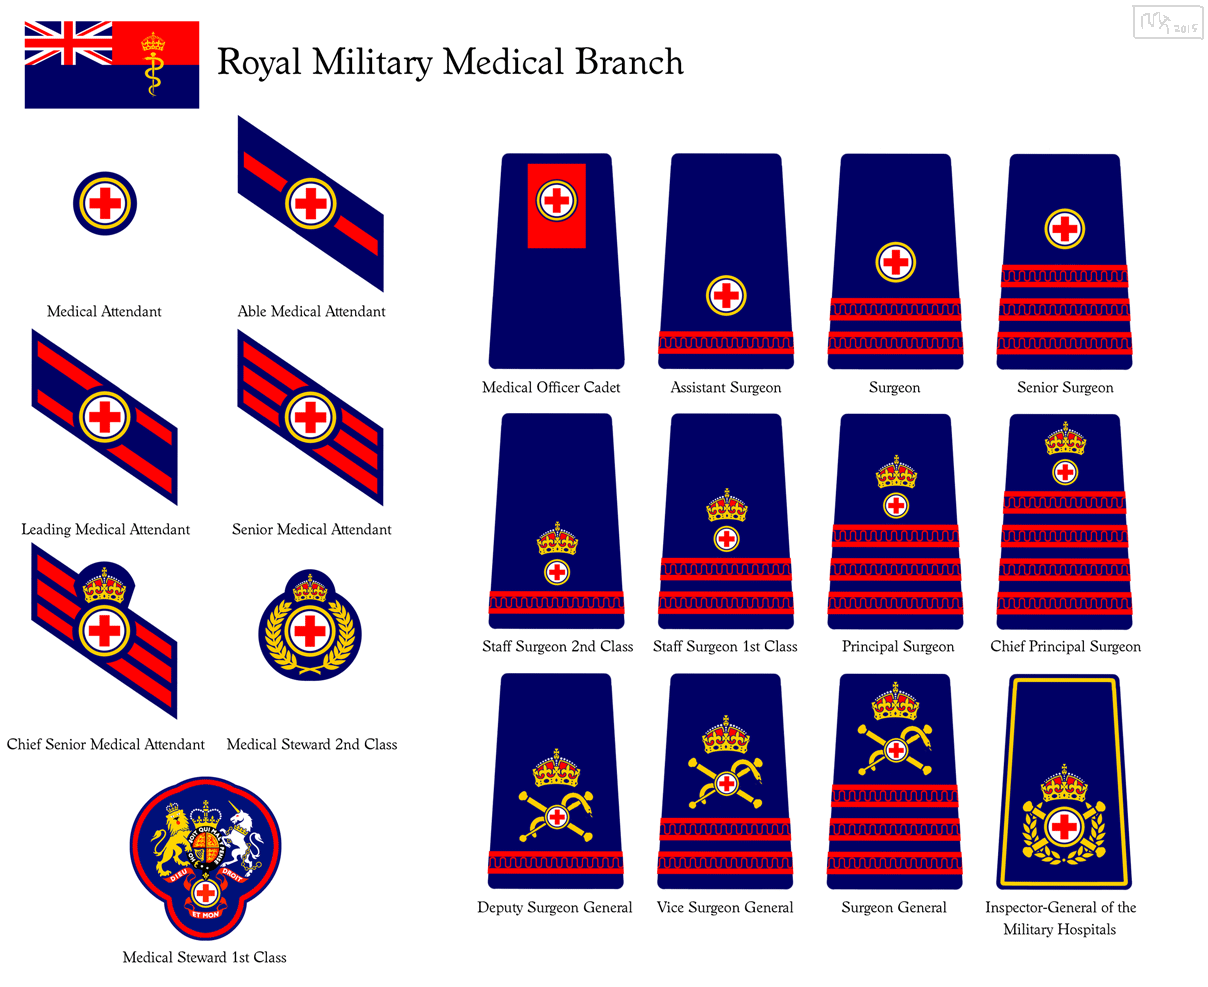 Valerian military ranks and insignia legionarii by valgryn on rmmb insignias by marcpasquin biocorpaavc Images